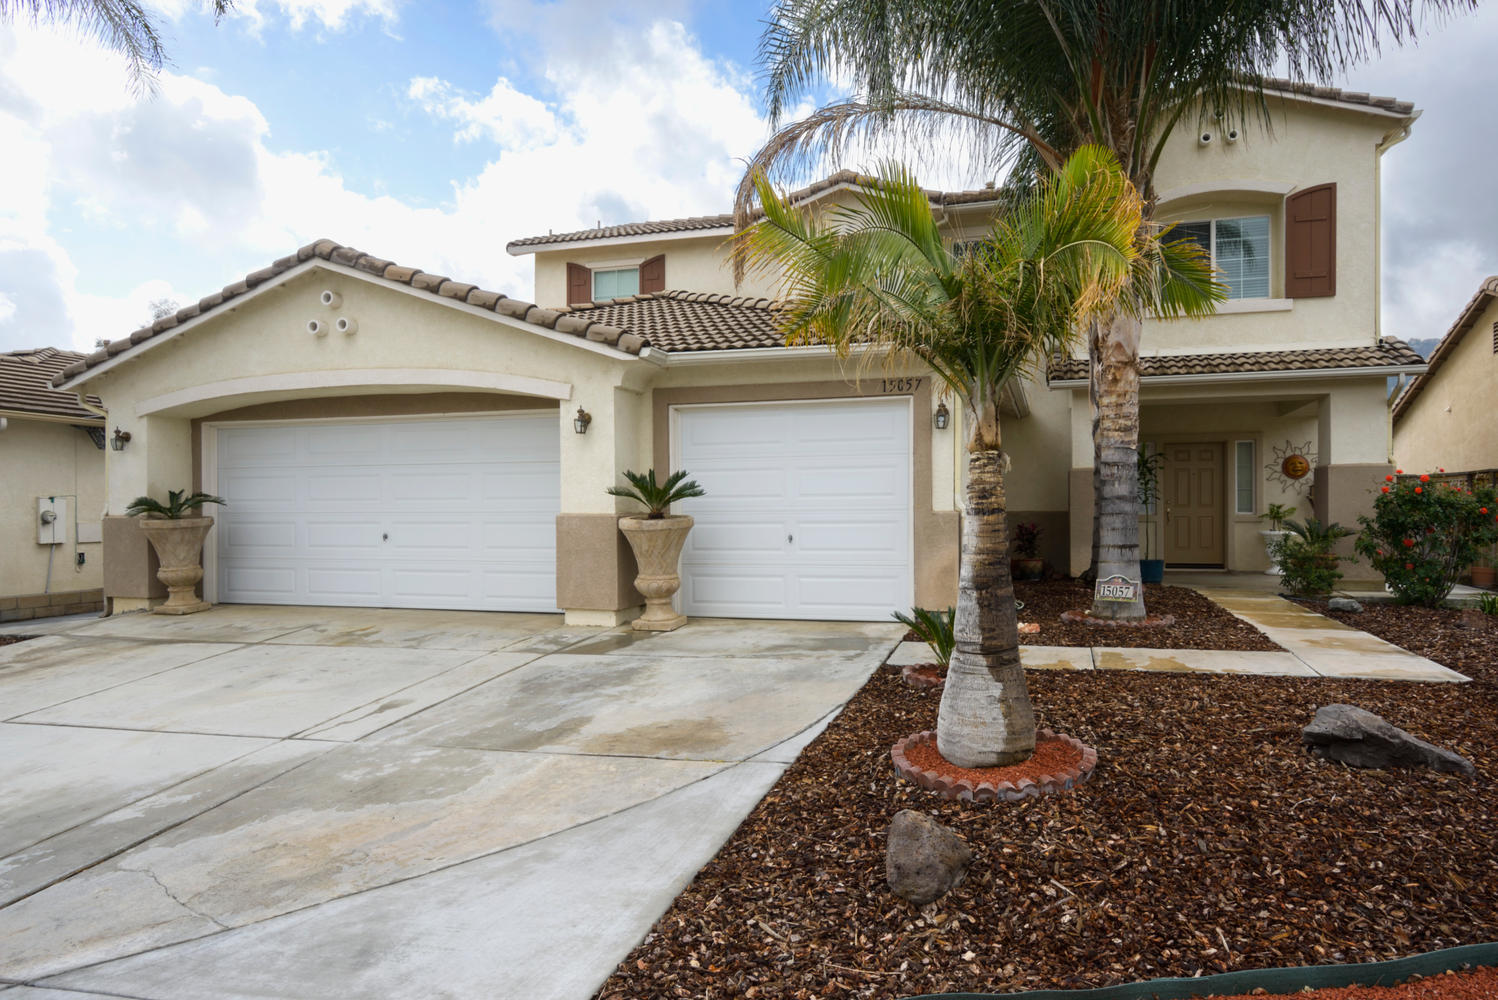 big 4 bedroom 3 bath lake elsinore home for sale stunning views